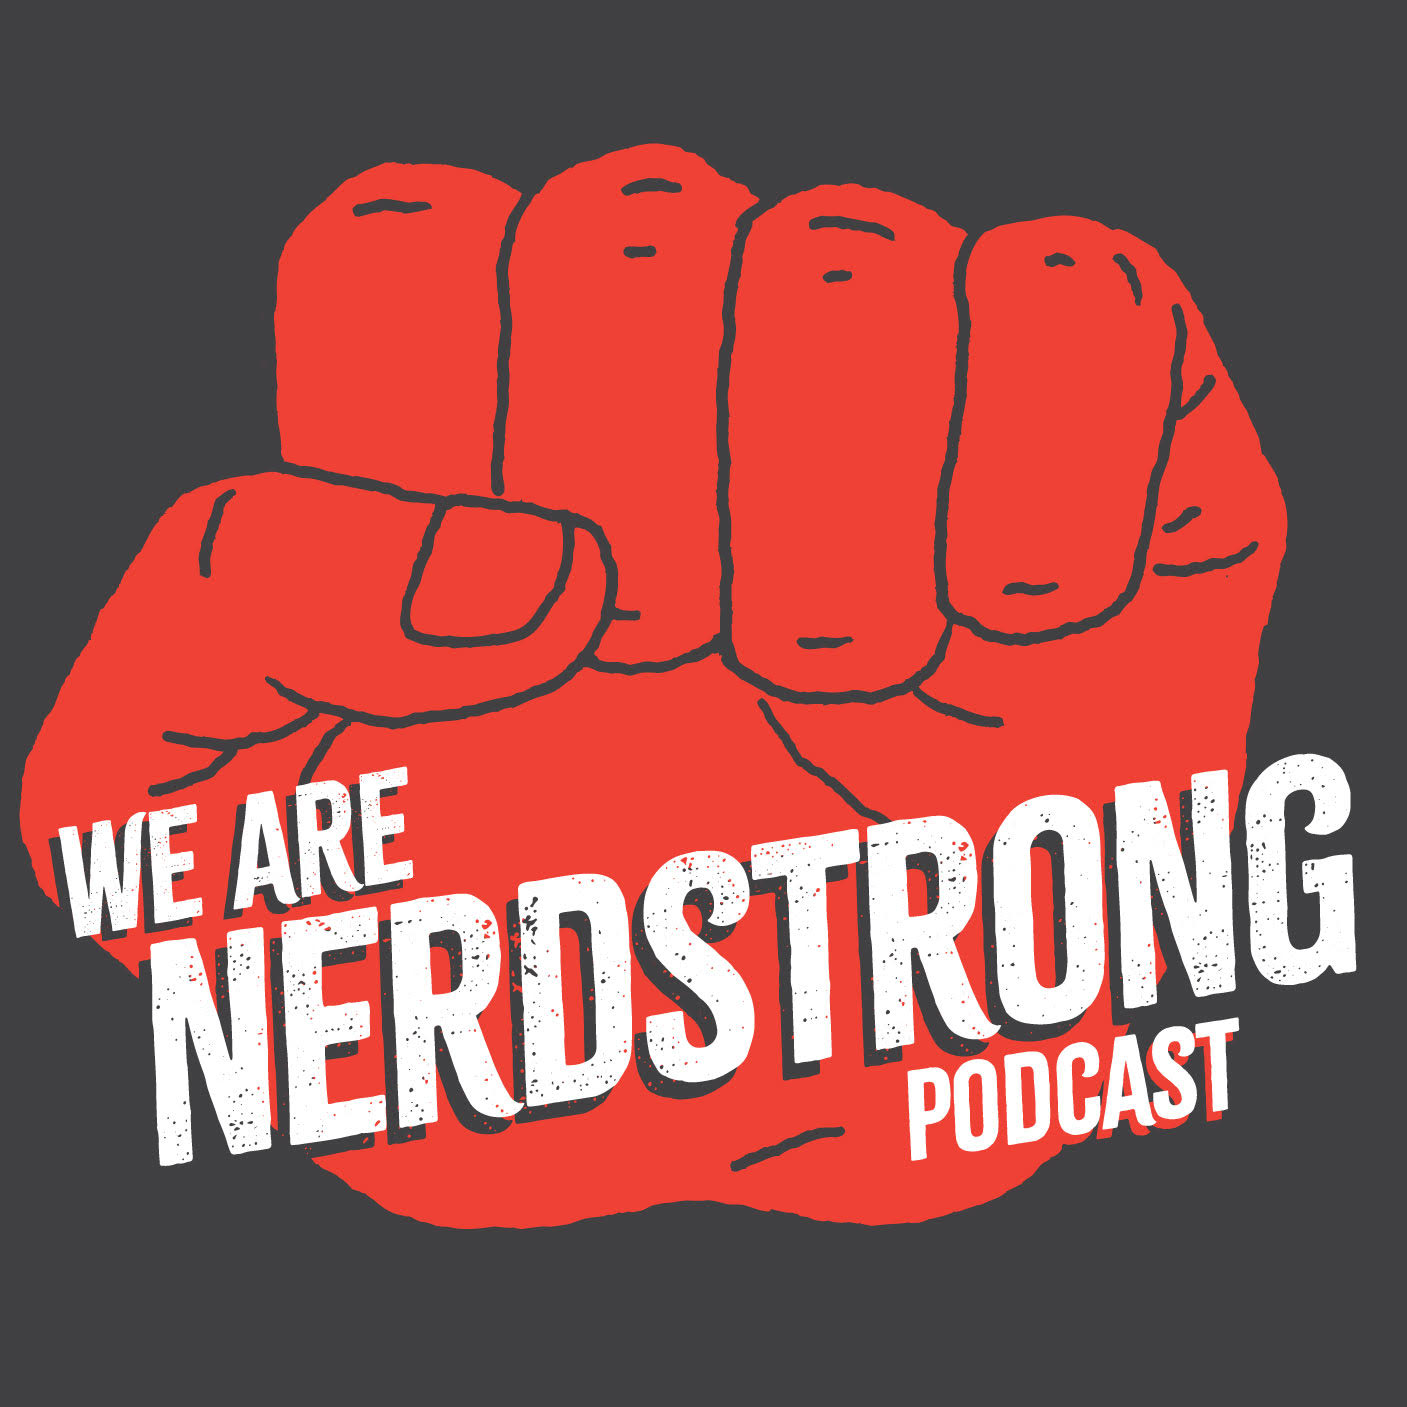 We Are NerdStrong Podcast Ep19 - Kettlebells, Carbs and Prequels